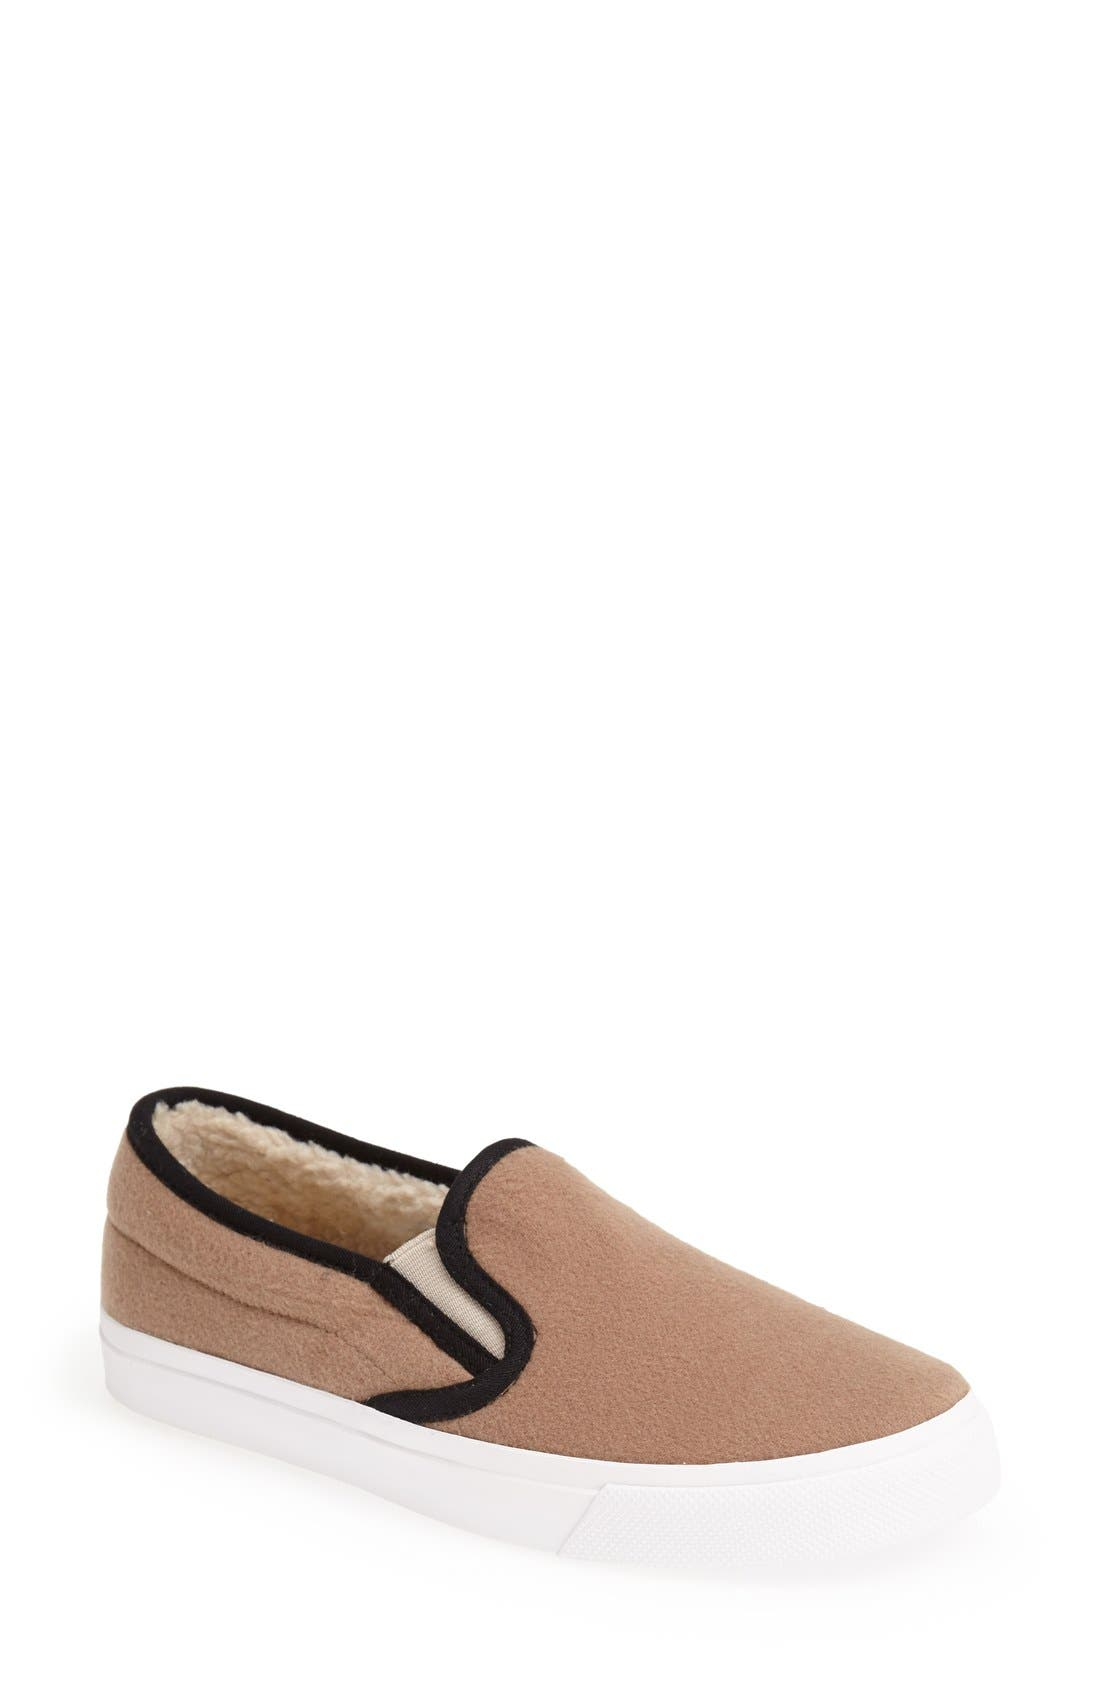 Alternate Image 1 Selected - Jeffrey Campbell 'Ray' Sneaker (Women)